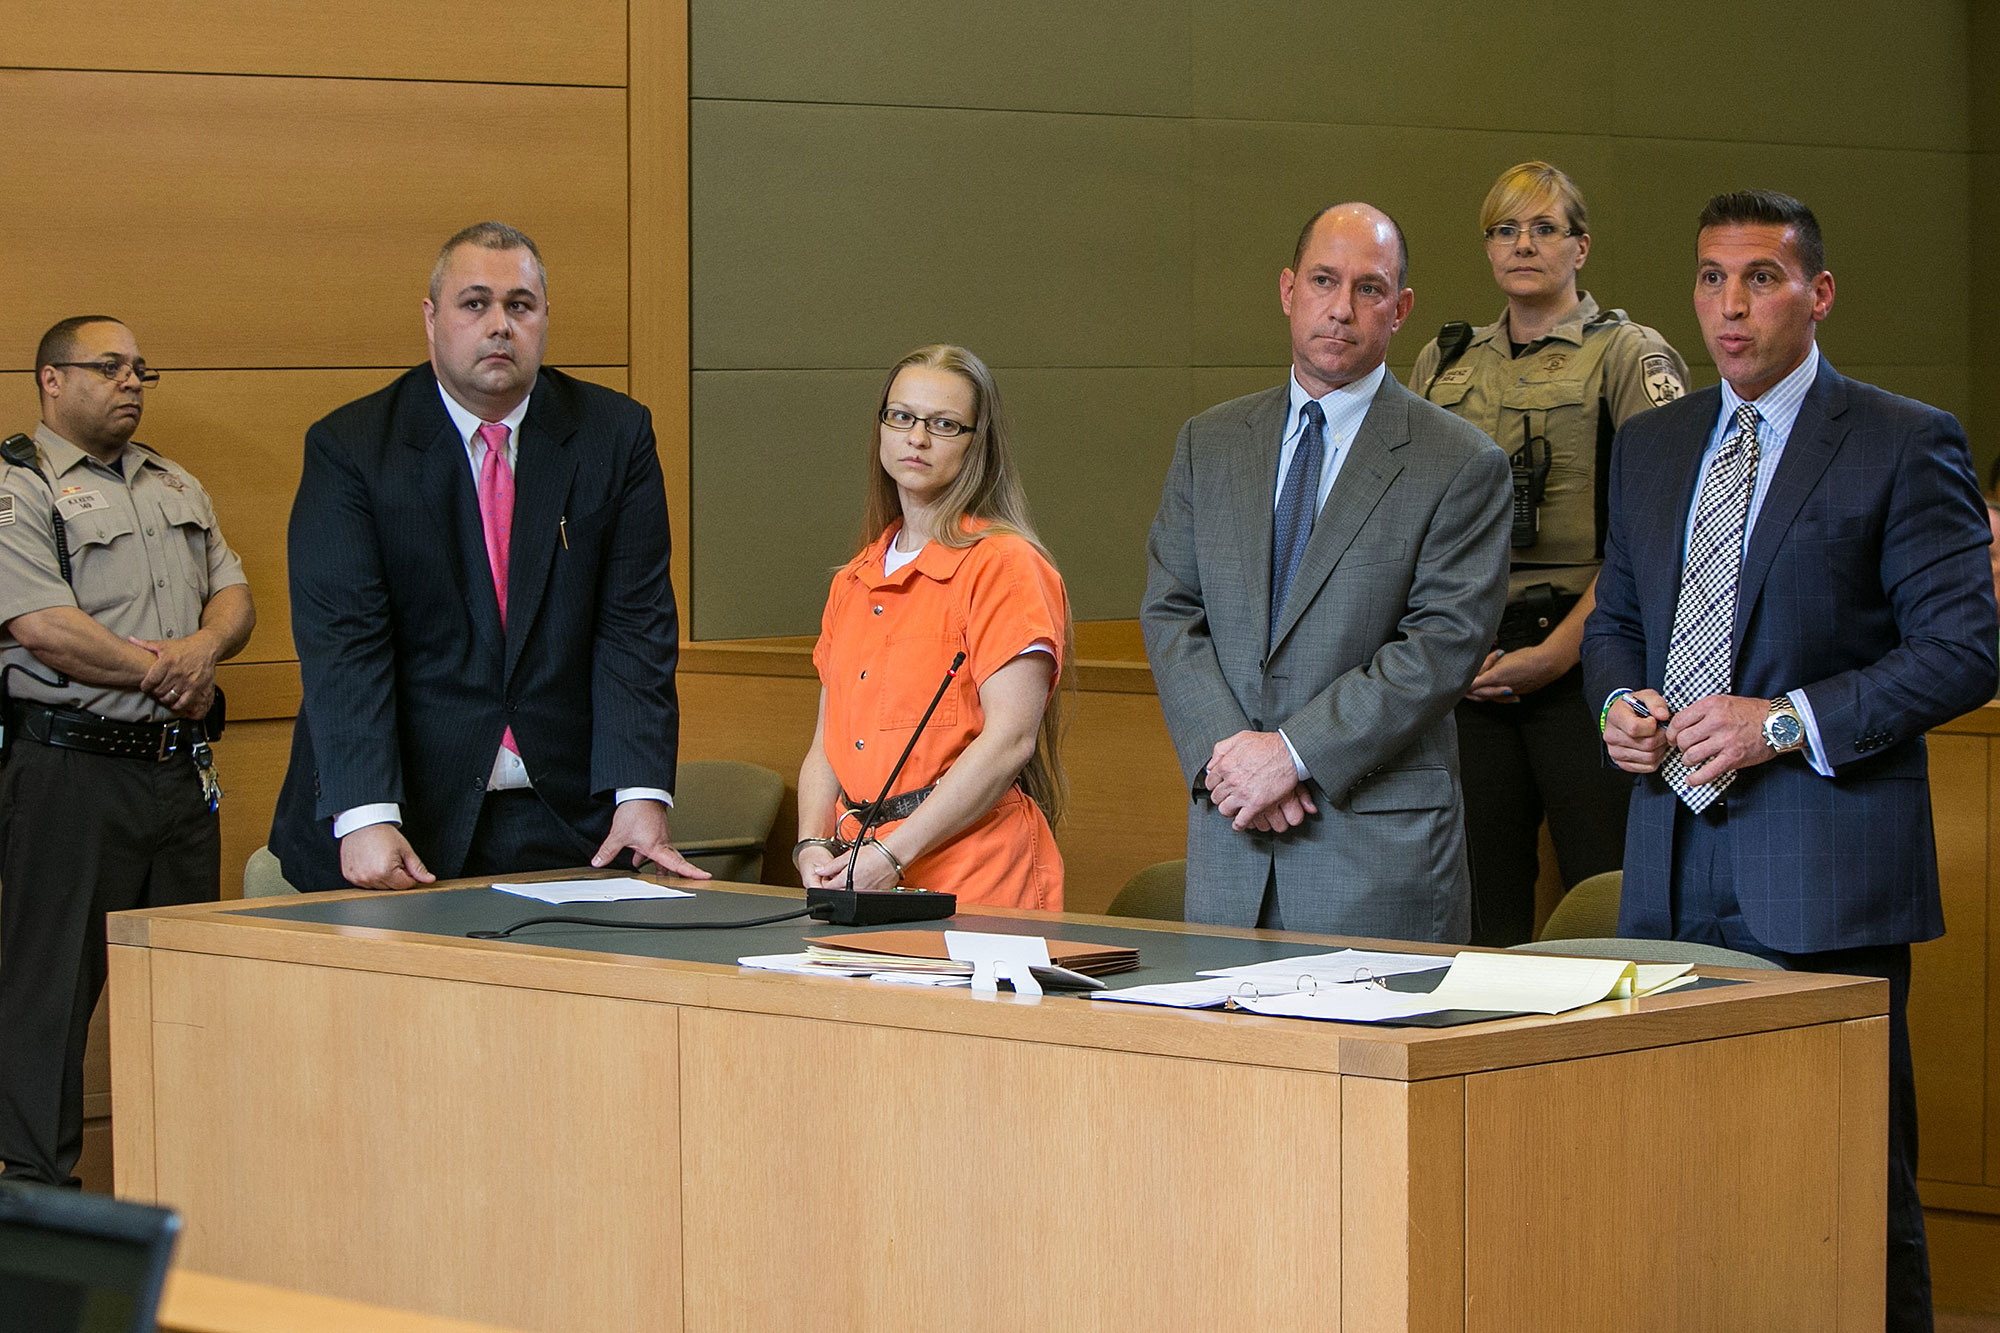 Angelika Graswald stands in court with Michael Archer a foresnsic scientist and her attorneys Jeffrey Chartier and Richard Portale ask for bail and to unseal the indictment against her at her bail hearing in Goshen, NY on May 13, 2015.  Ms. Graswald has b